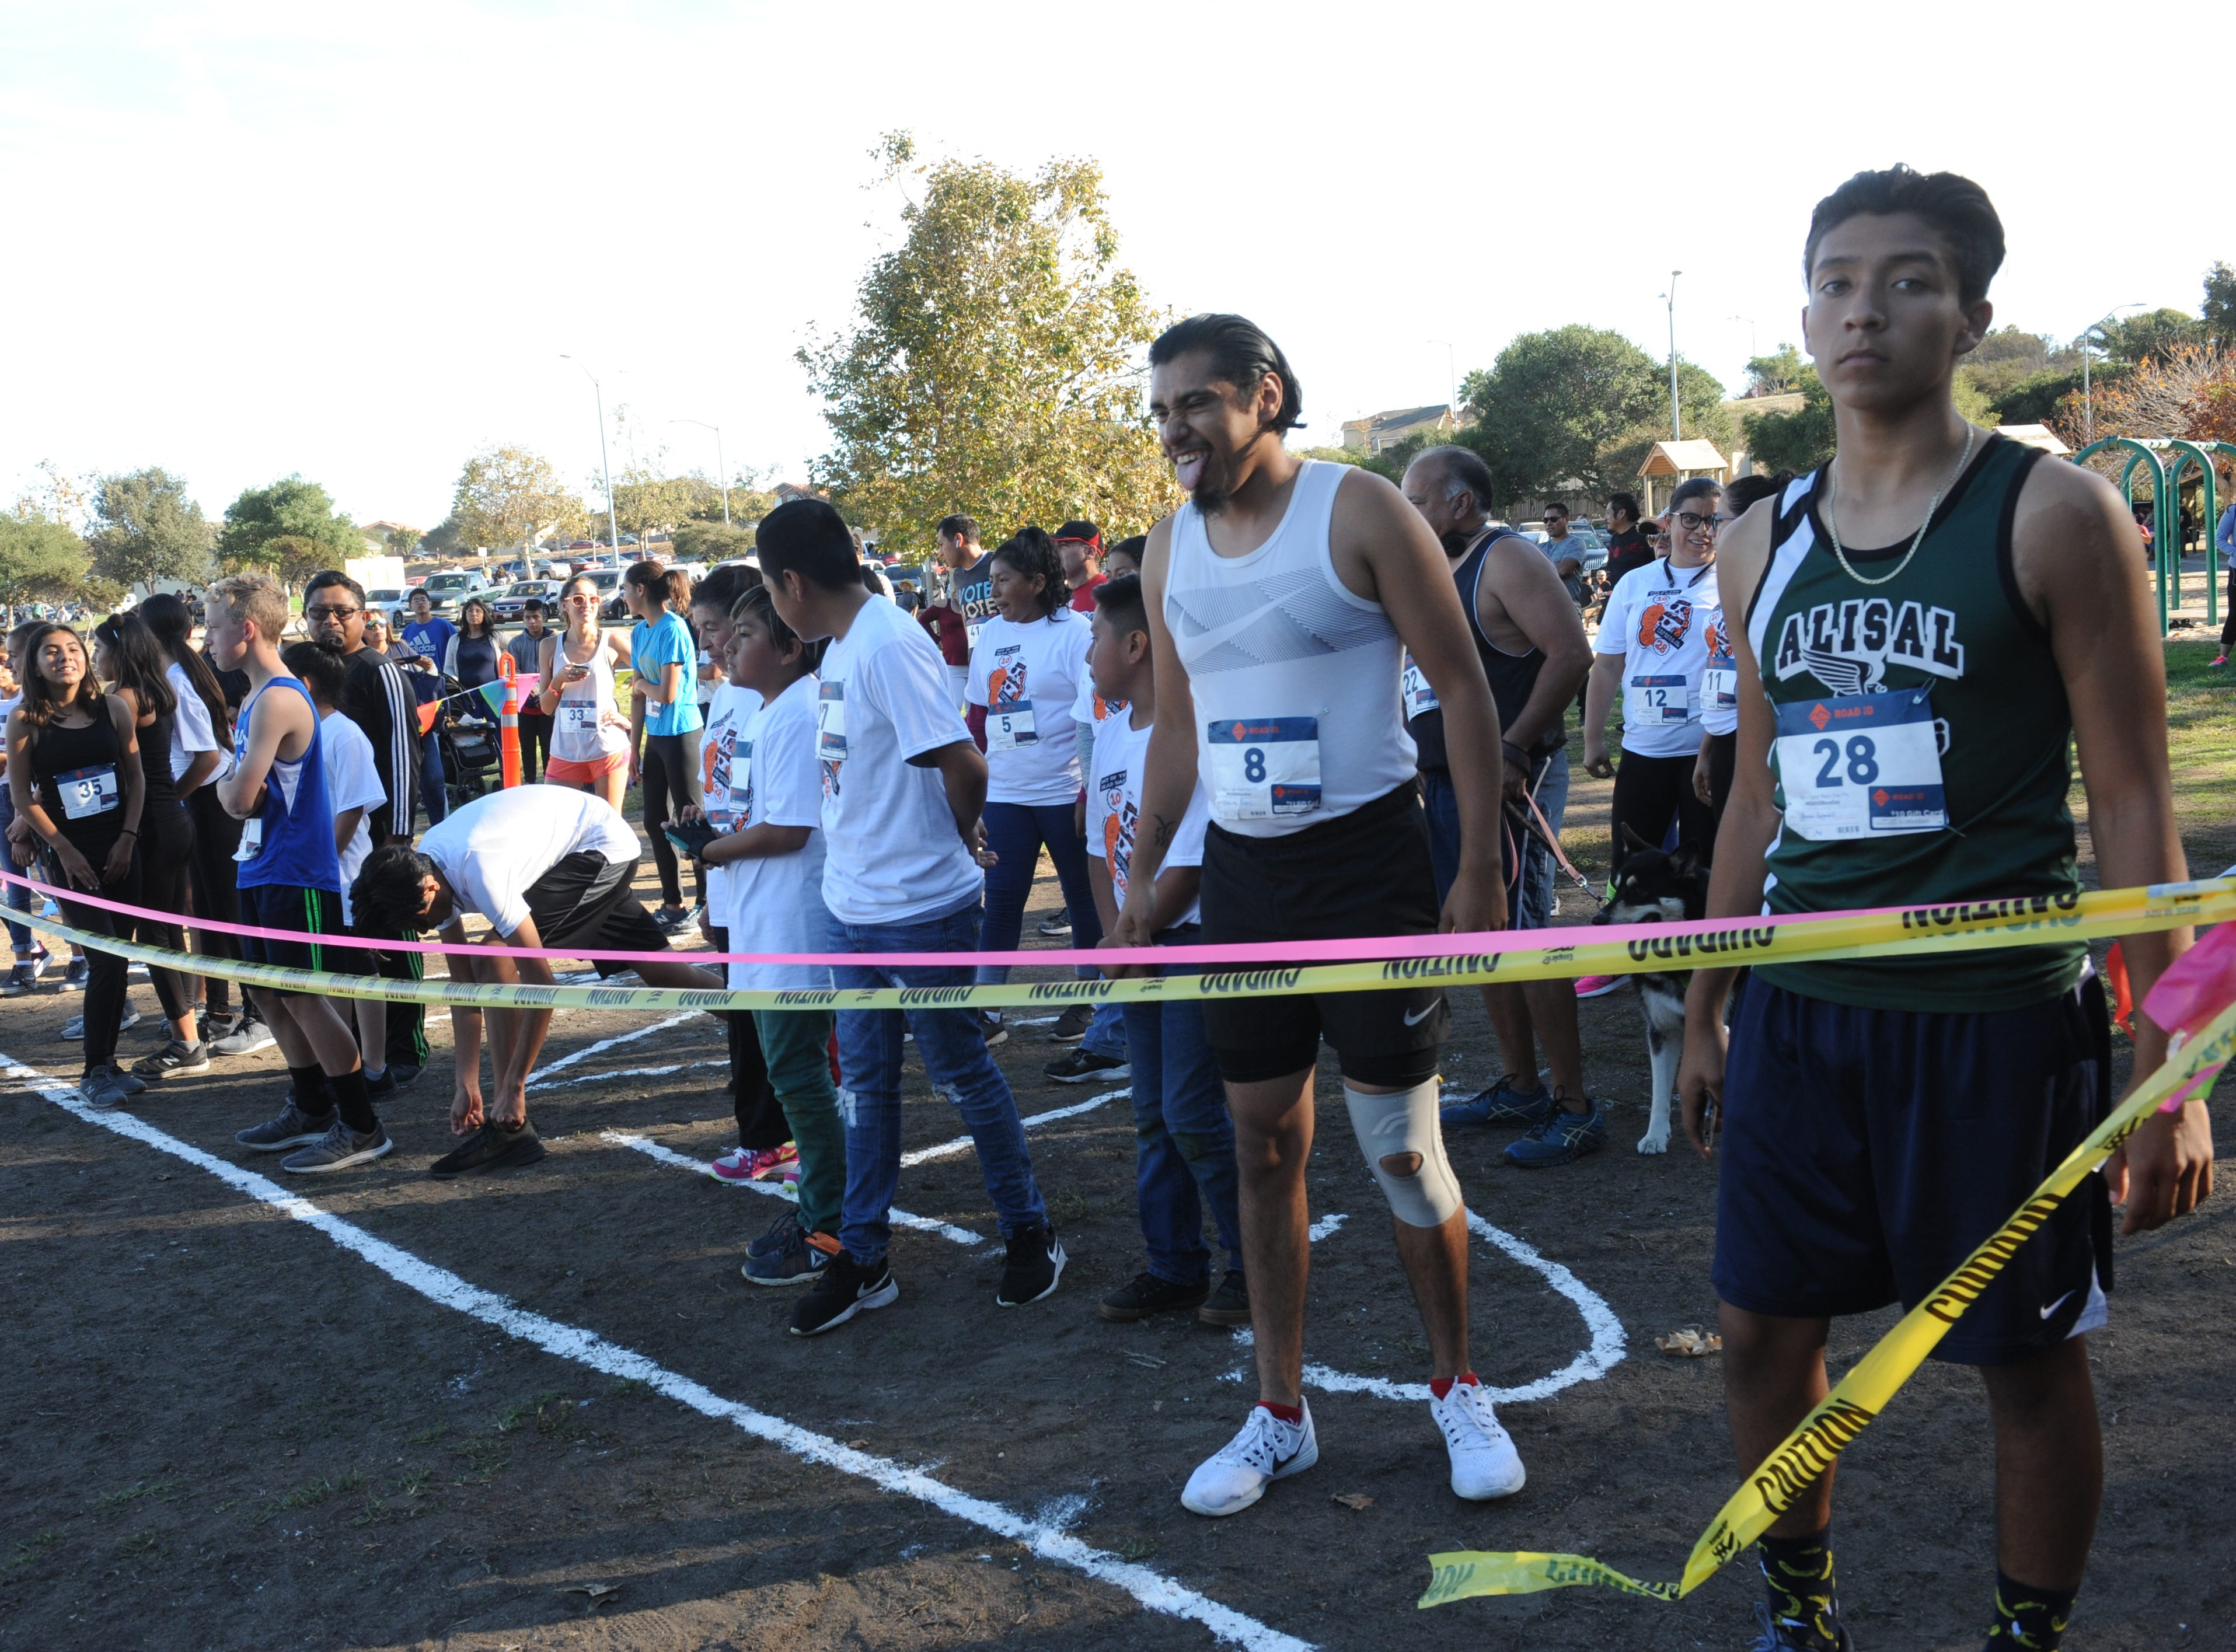 Runners get set for the Día de los Muertos benefit 5K run, which took place at Natividad Creek Park on Sunday.